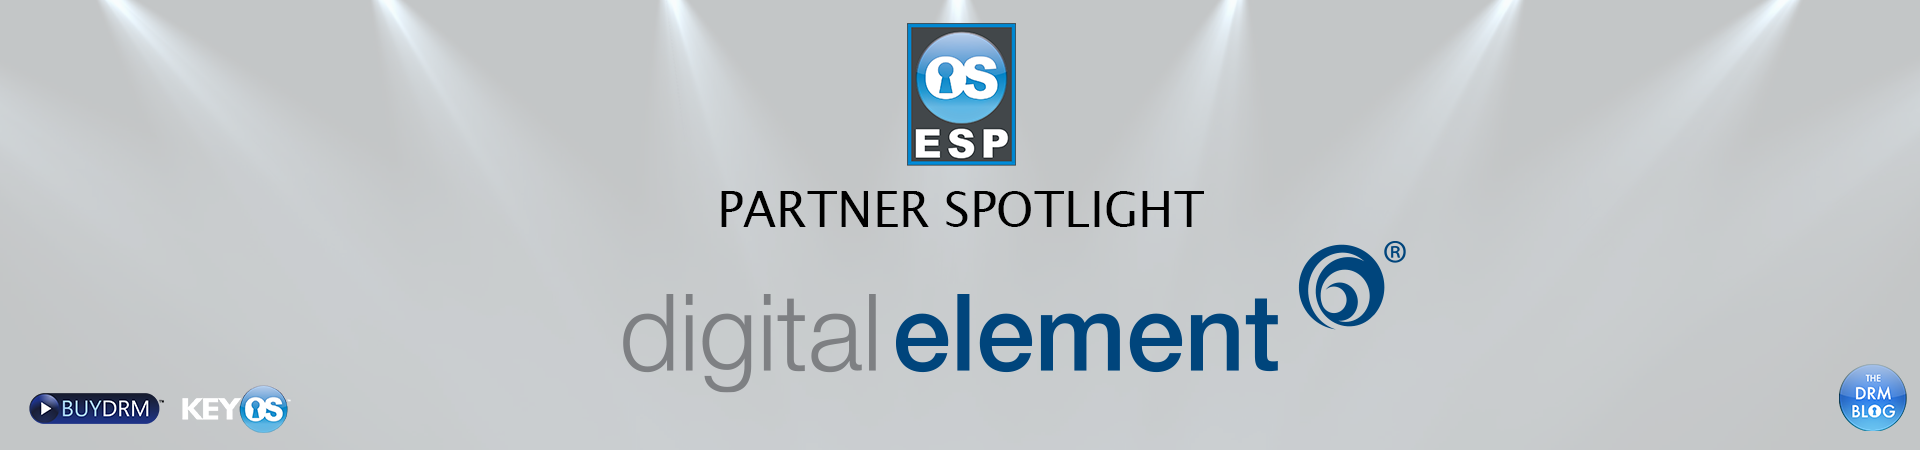 ESPPartnerSpotlight_DigitalElement_Desktop_1920x450